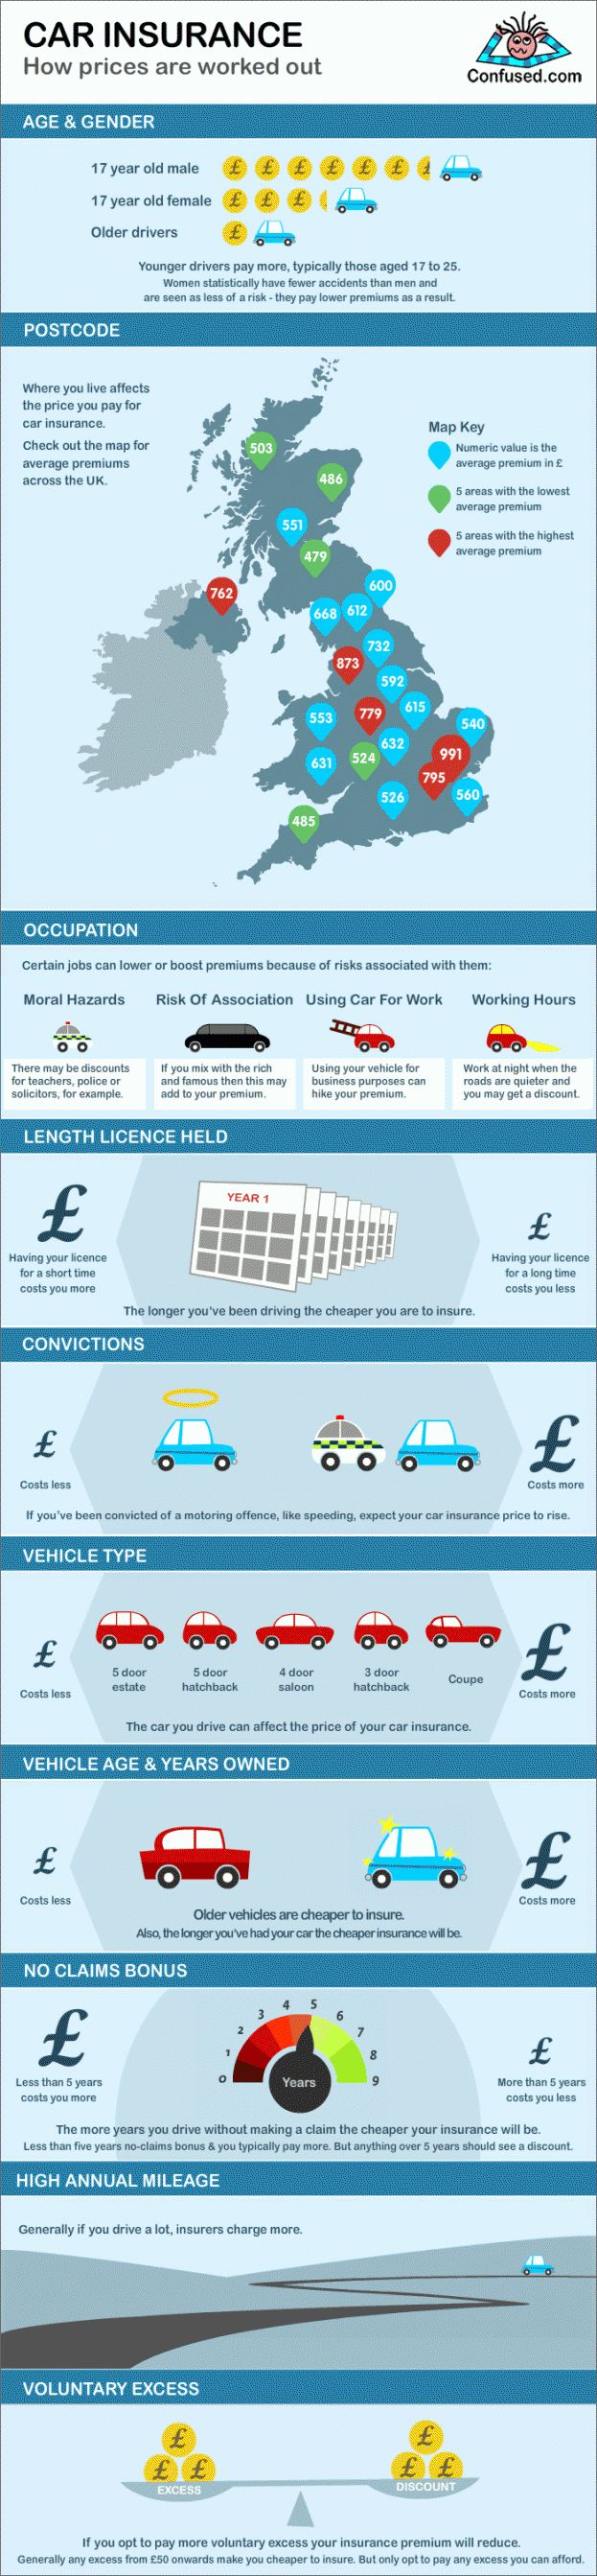 Car insurance prices in the United Kingdom depends on where you live. This infographic takes a closer look at the prices of different car insurances a